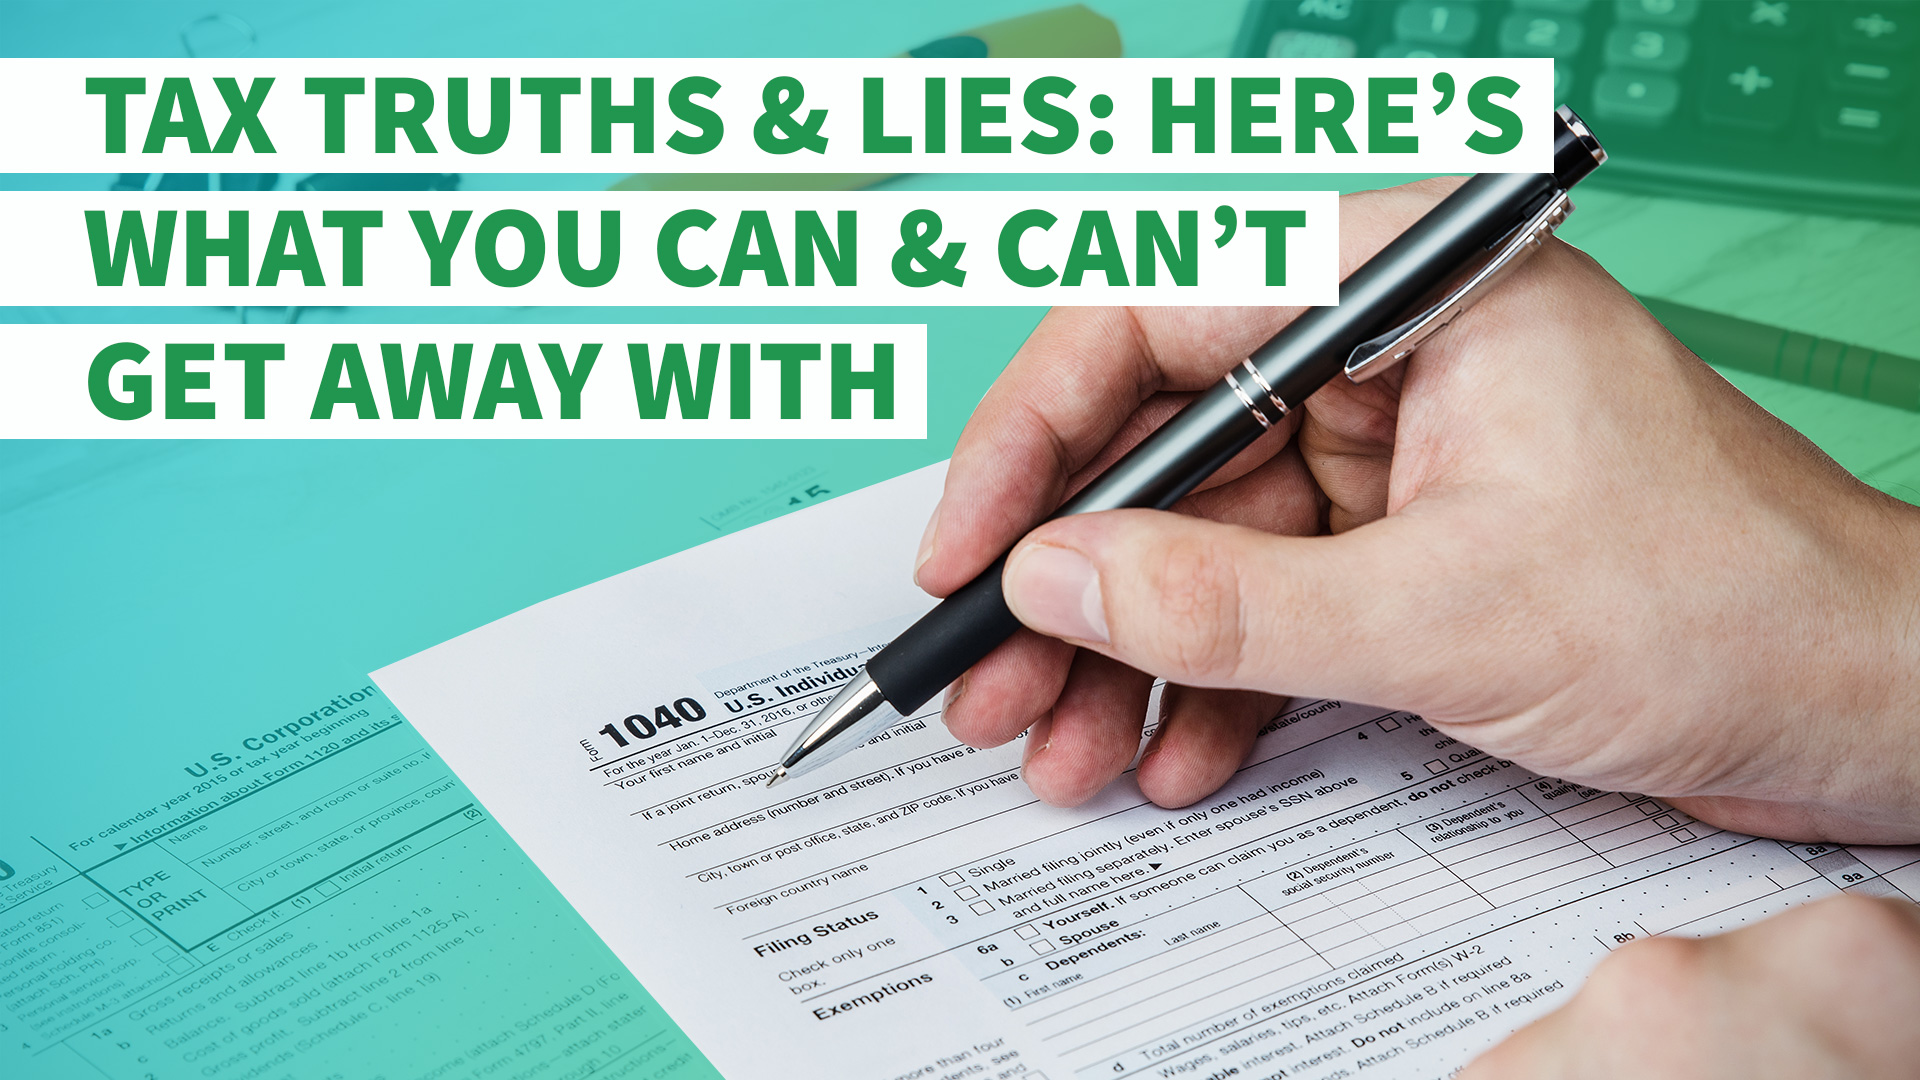 Tax Truths And Lies Heres What You Can And Cant Get Away With